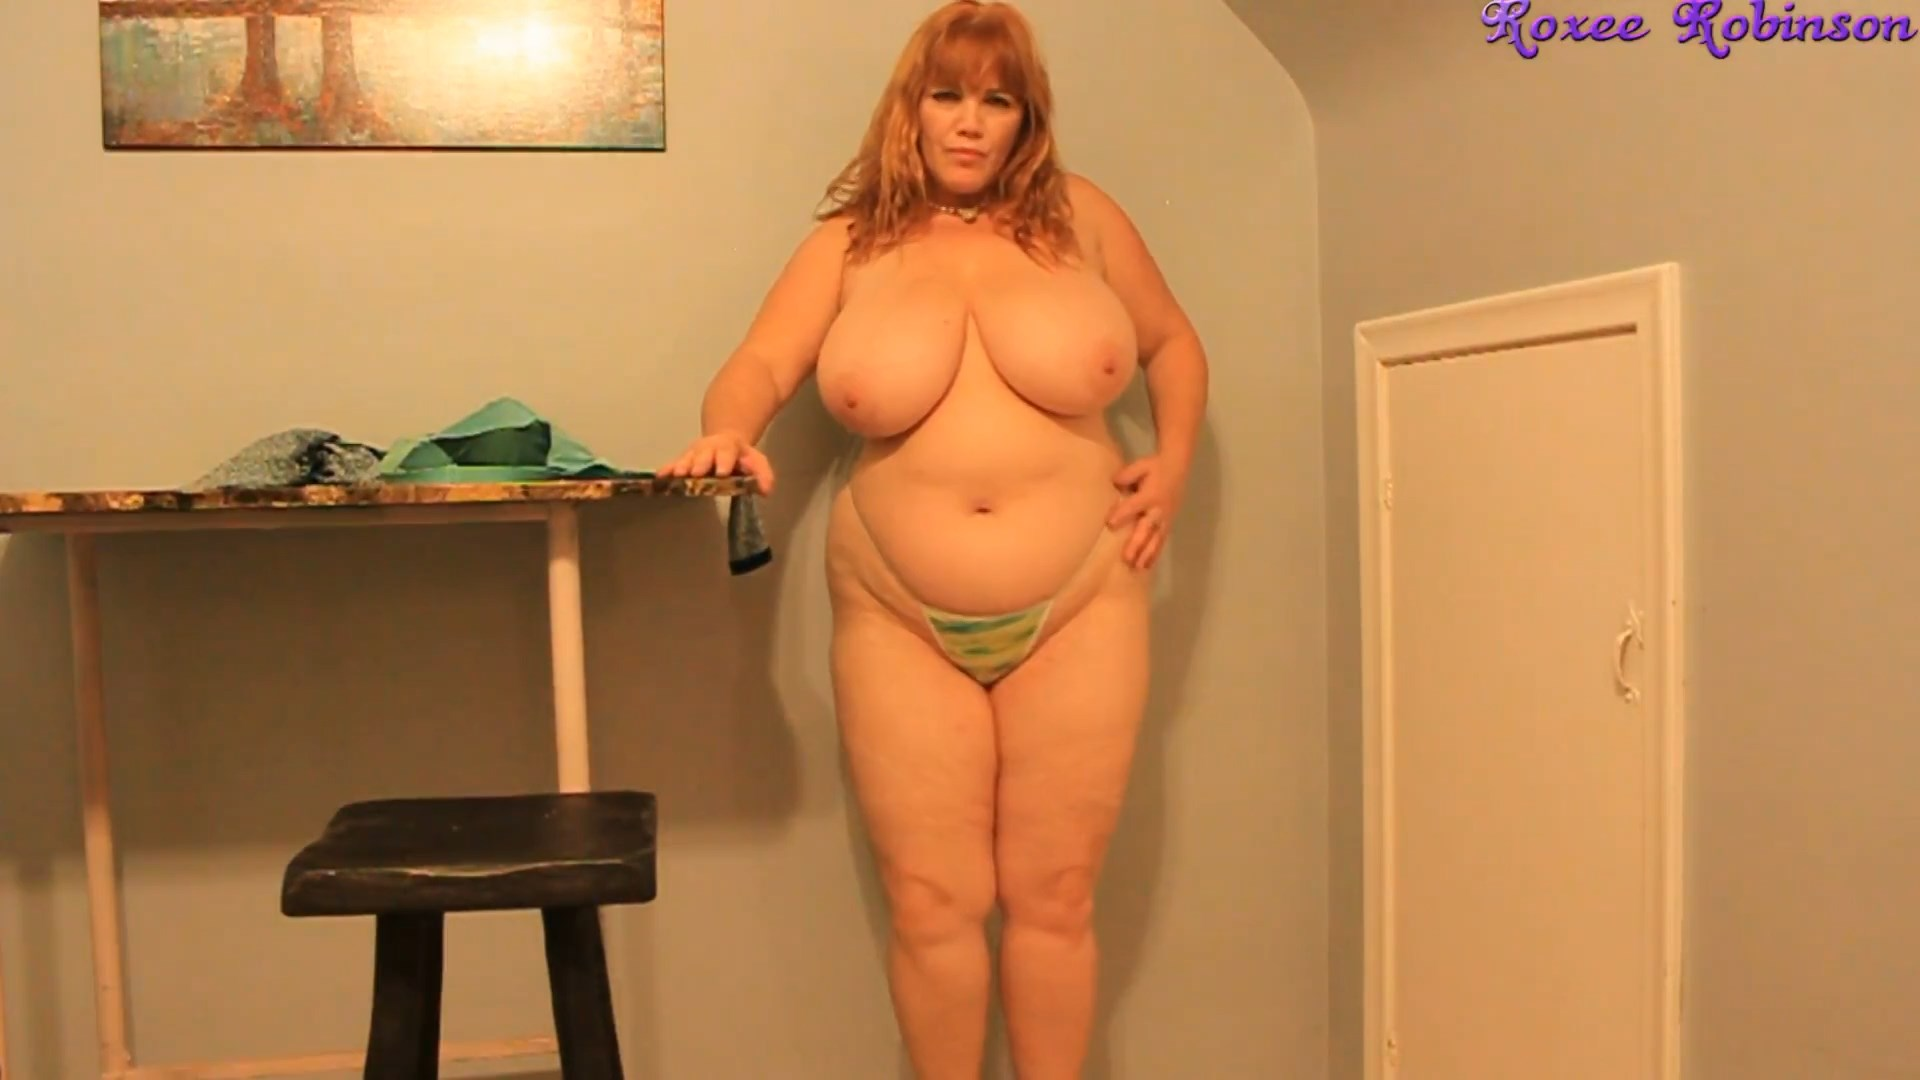 Roxee Robinson - Sexy Mommy Strip Tease